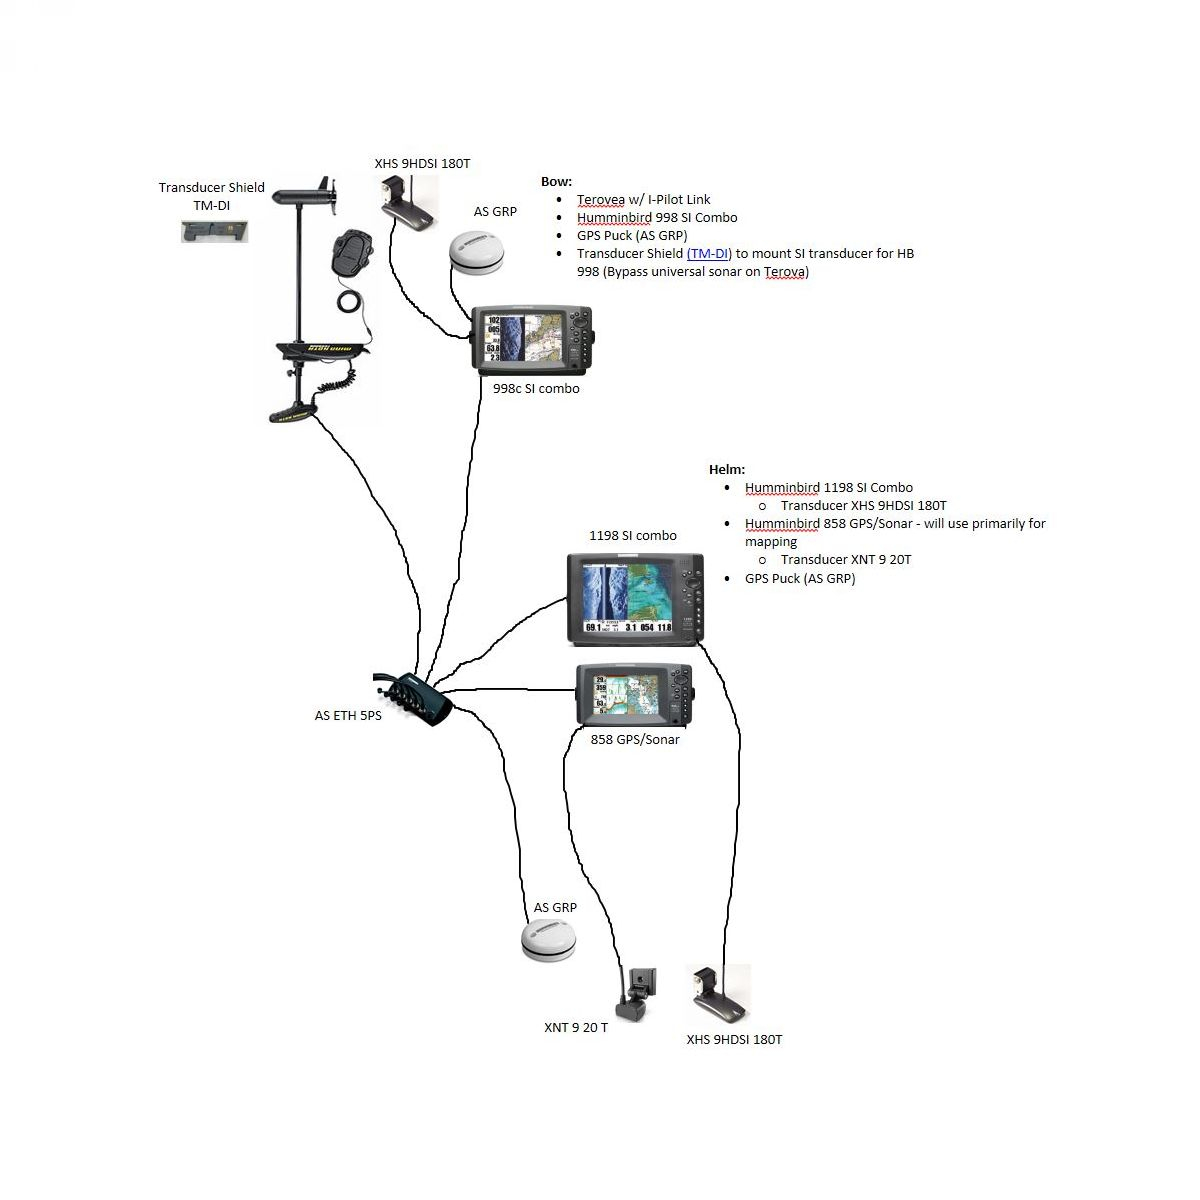 DIAGRAM] Garmin Fish Finder Wiring Diagram FULL Version HD Quality Wiring  Diagram - DIAGRAMFORM.VIVERENEWS.ITDiagram Database